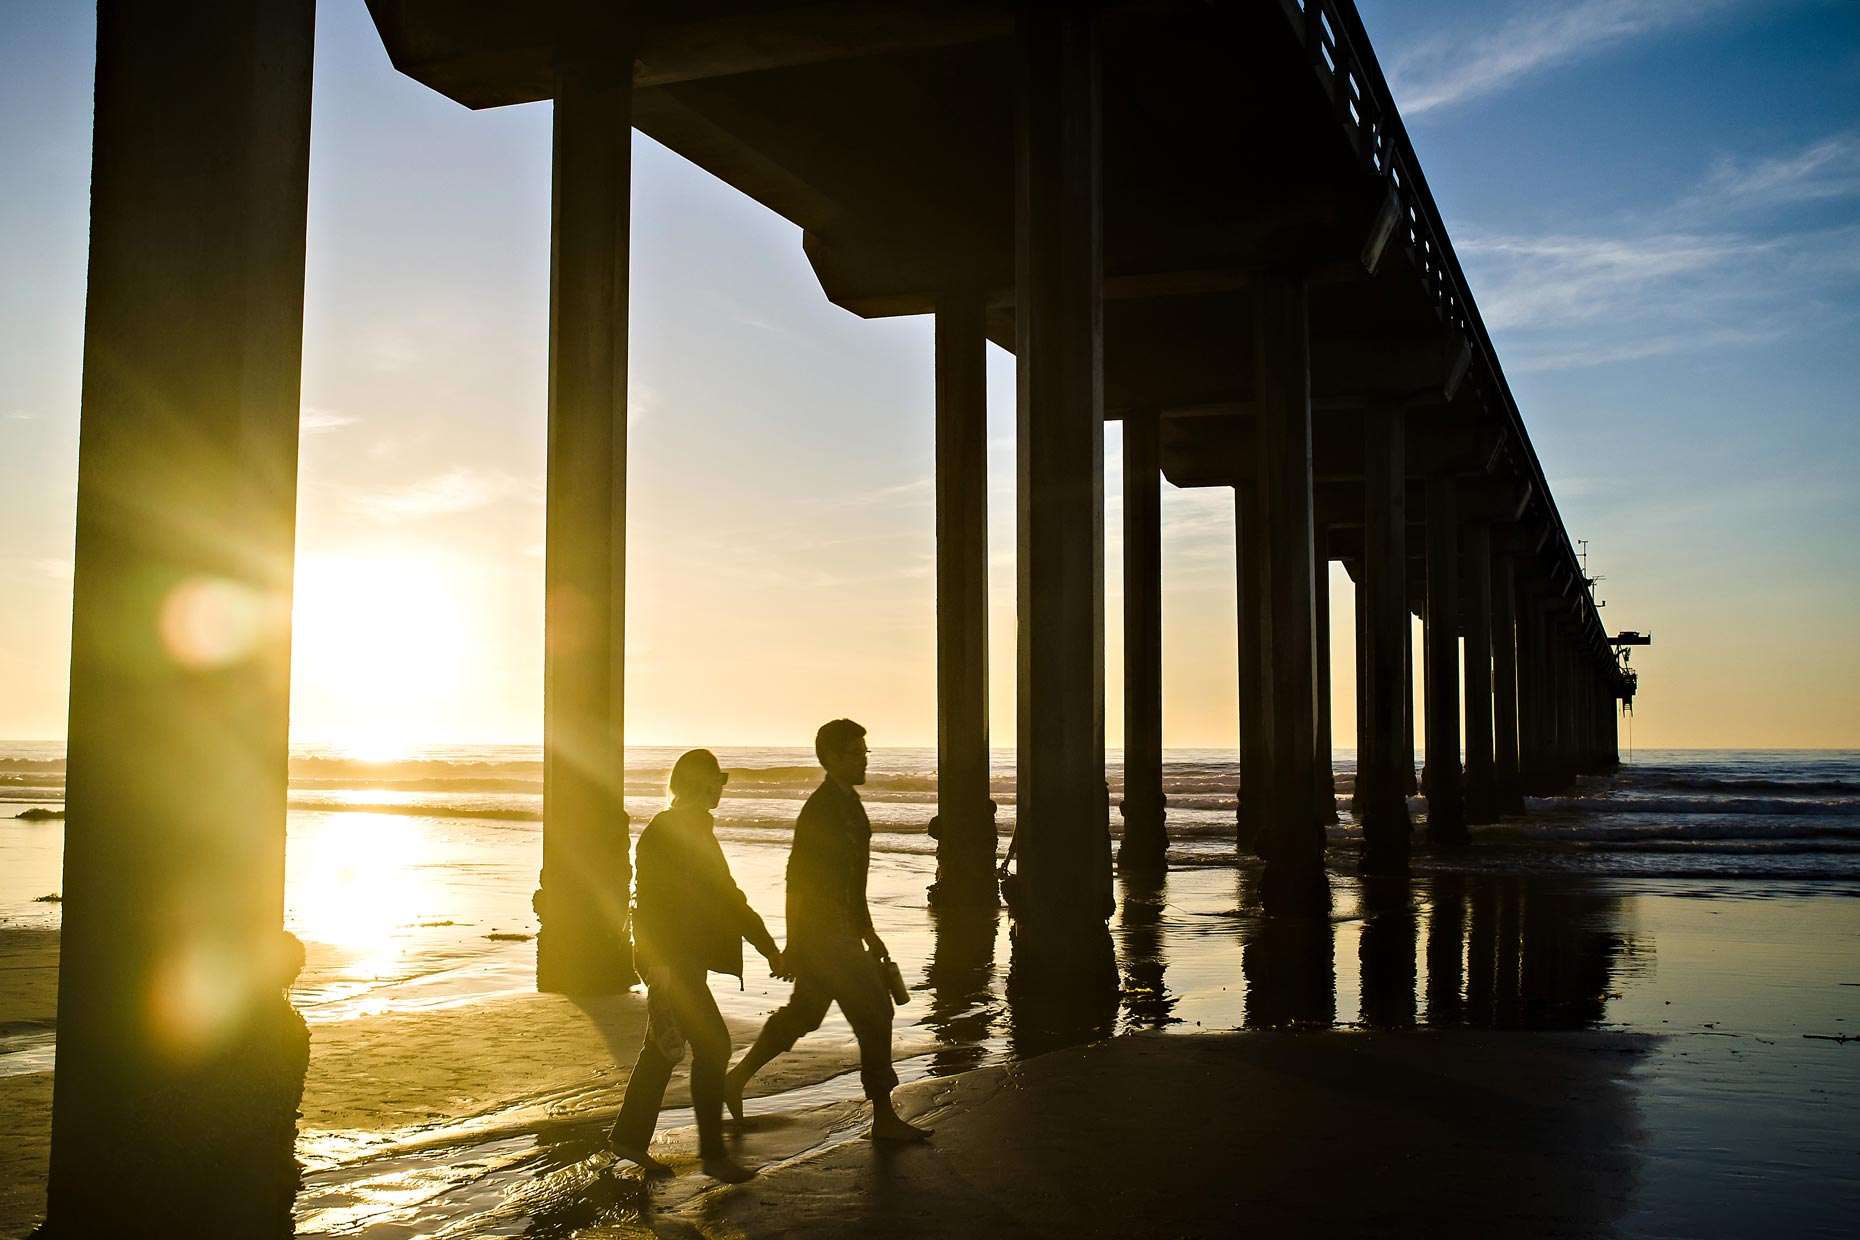 San Diego Scripps Pier at sunset with couple walking.